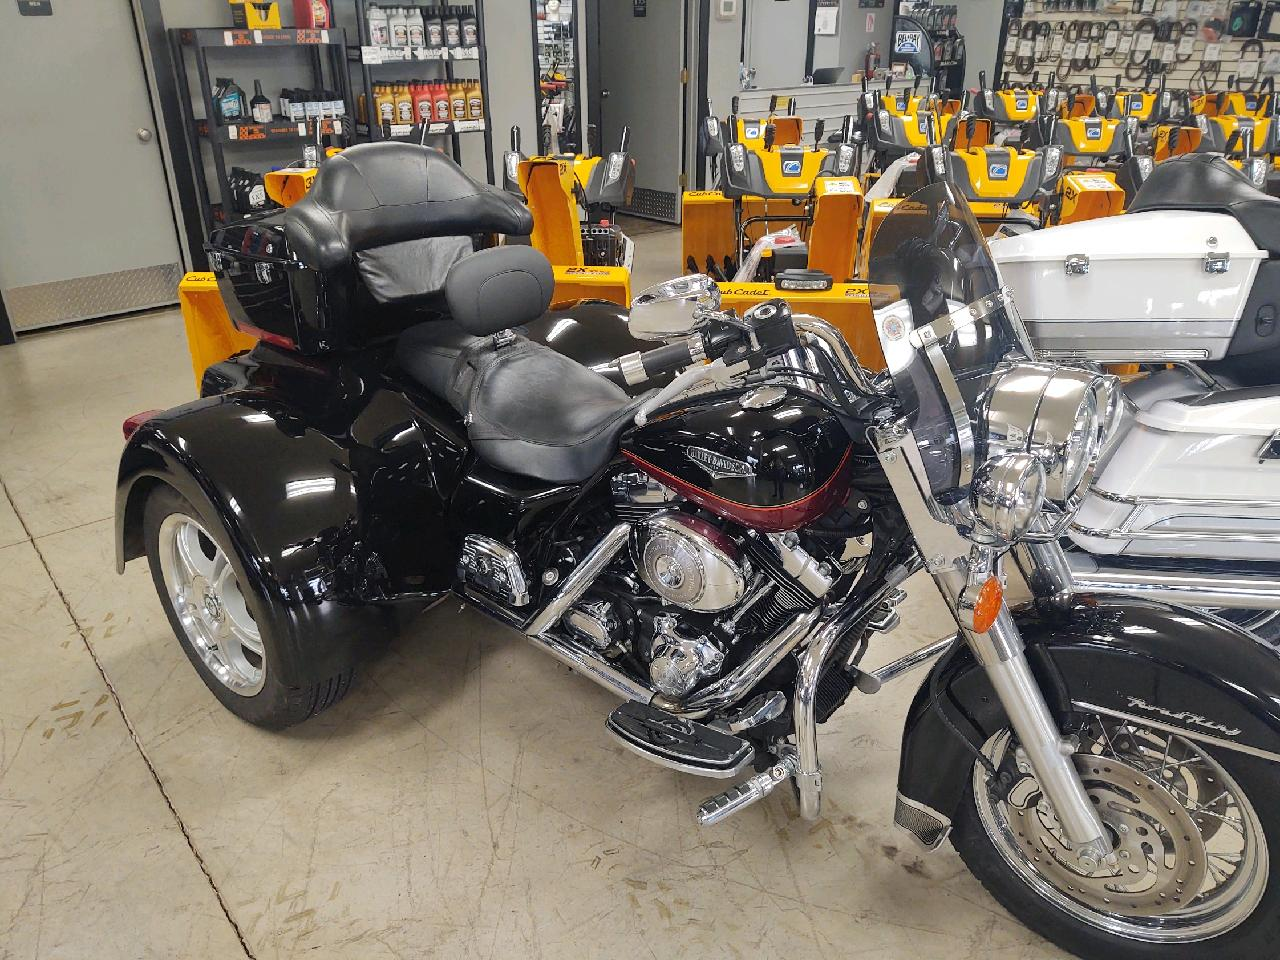 2005 Harley-Davidson Road King Trike conversion